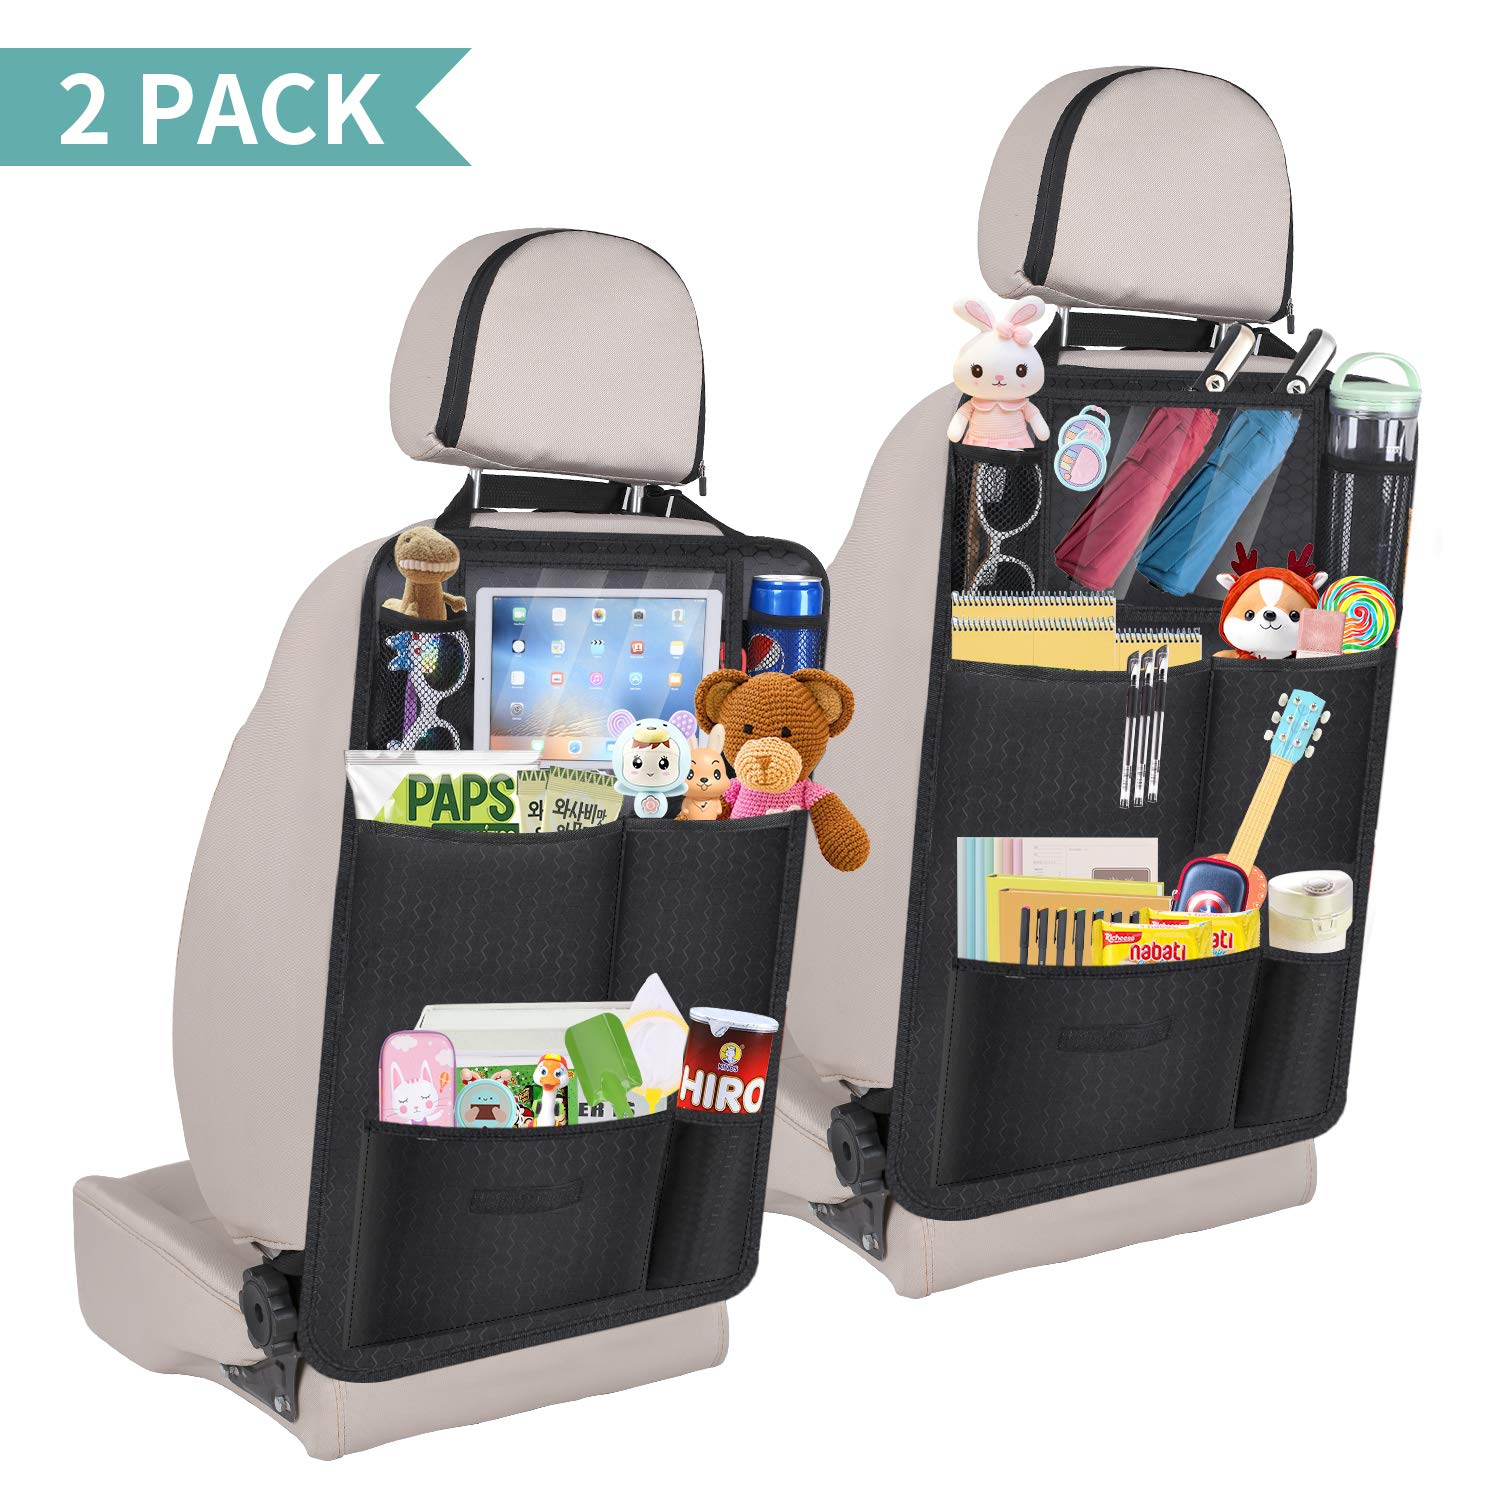 Enjoyee Upgraded 2 Pack Car Back Seat Organizer for Kids Car Organizer Kick Mats with 7 Storage Pockets Backseat Car Organizer for Toy Bottle Drink Vehicles by Enjoyee